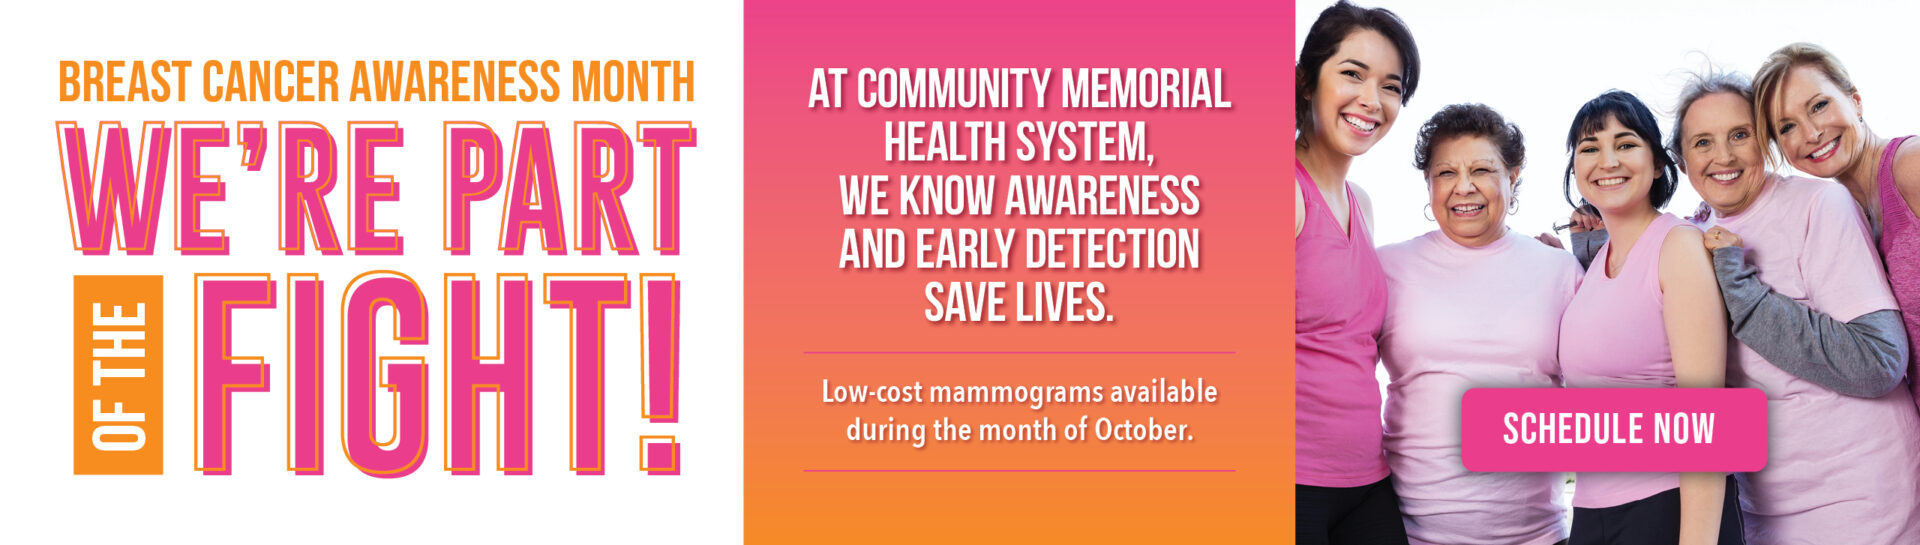 Low-cost mammograms are available during the month of October. Schedule now.